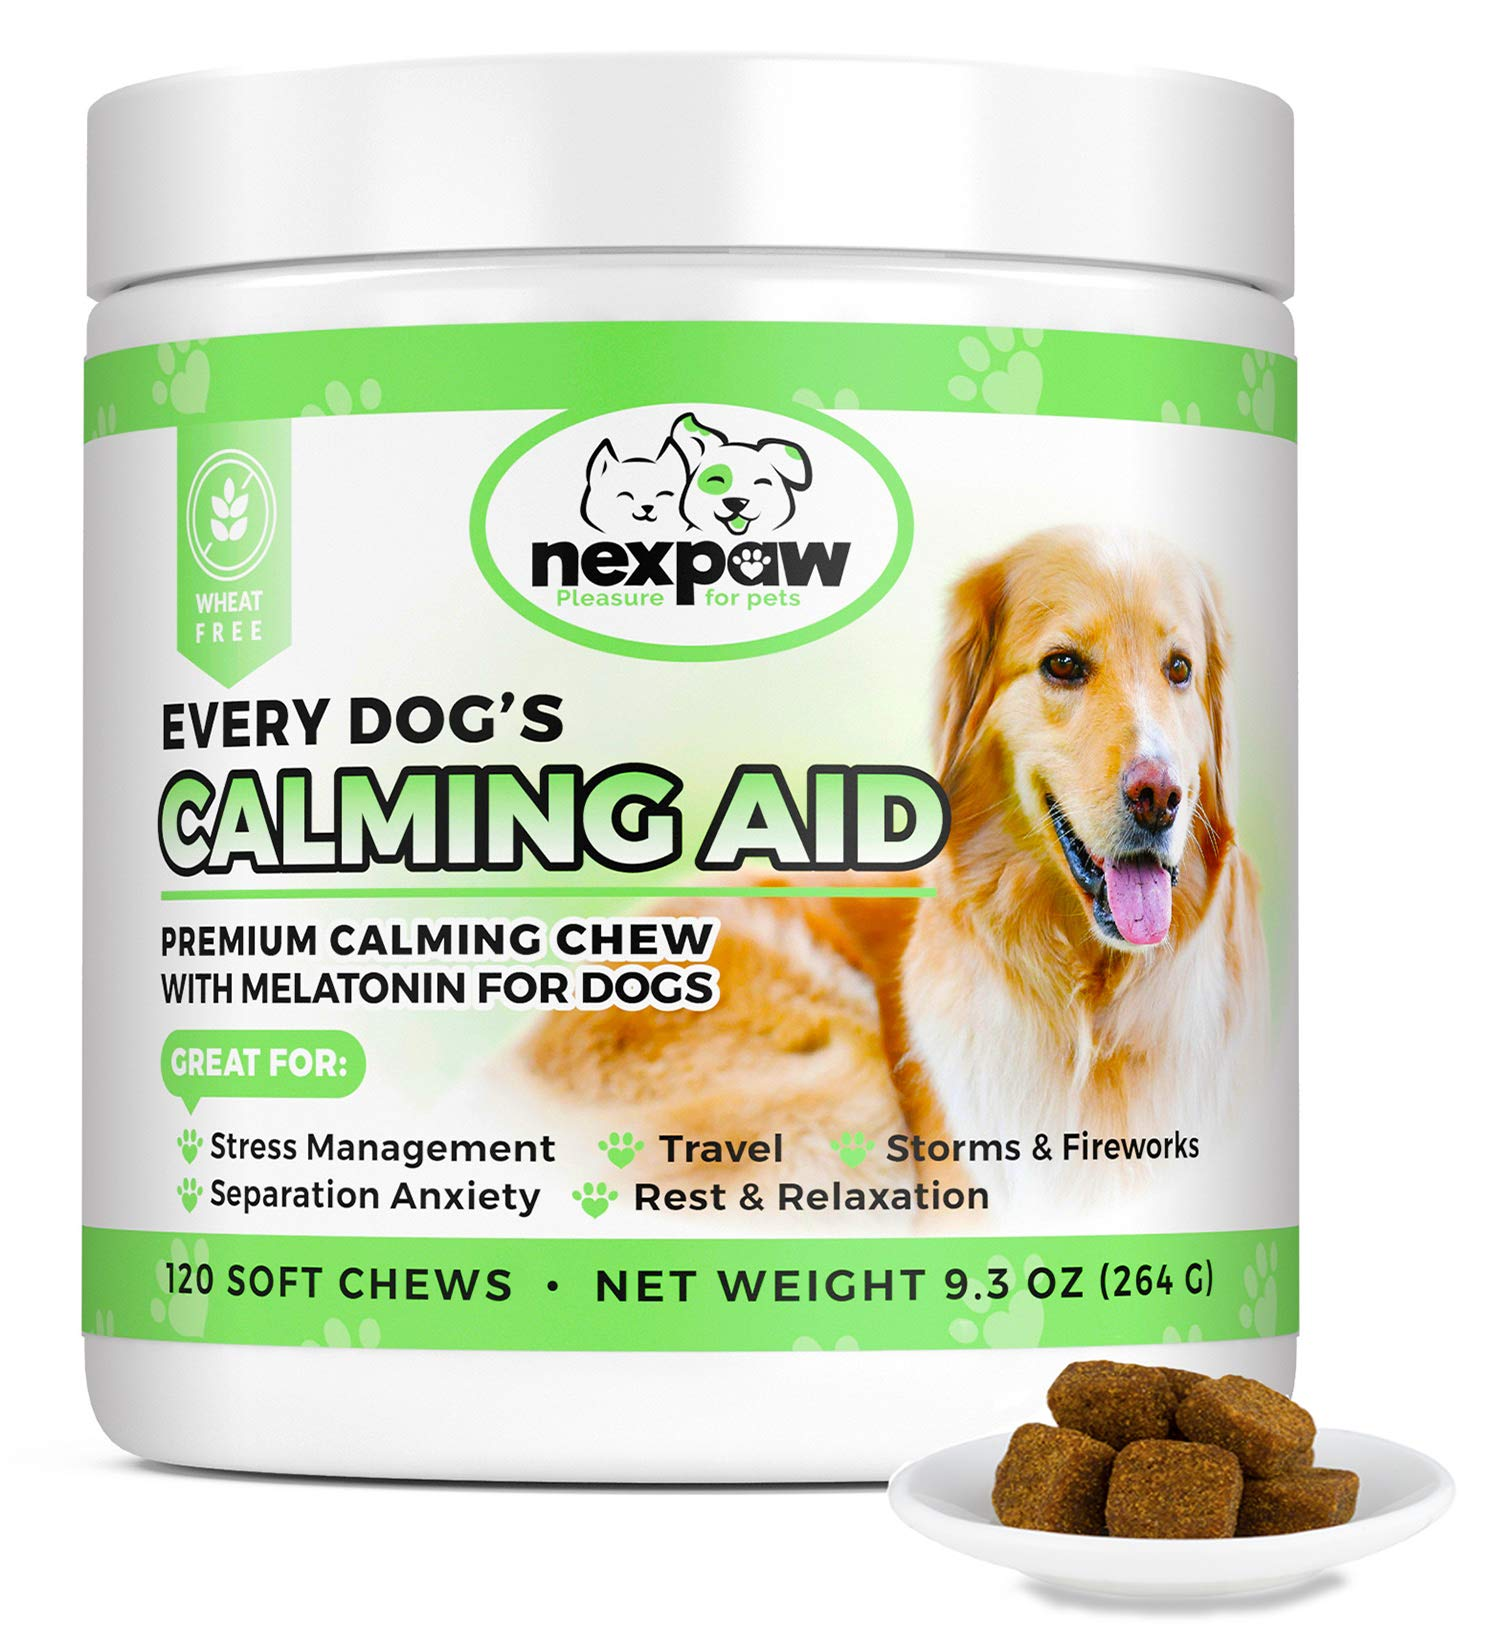 NEXPAW Calming Treats for Dogs with Melatonin - Best for Anxiety from Separation - Thunder - Travel - Safe & Natural Aid - Canine Stress Helper - 120 Wheat Free Soft Chews Dogs Love by NEXPAW